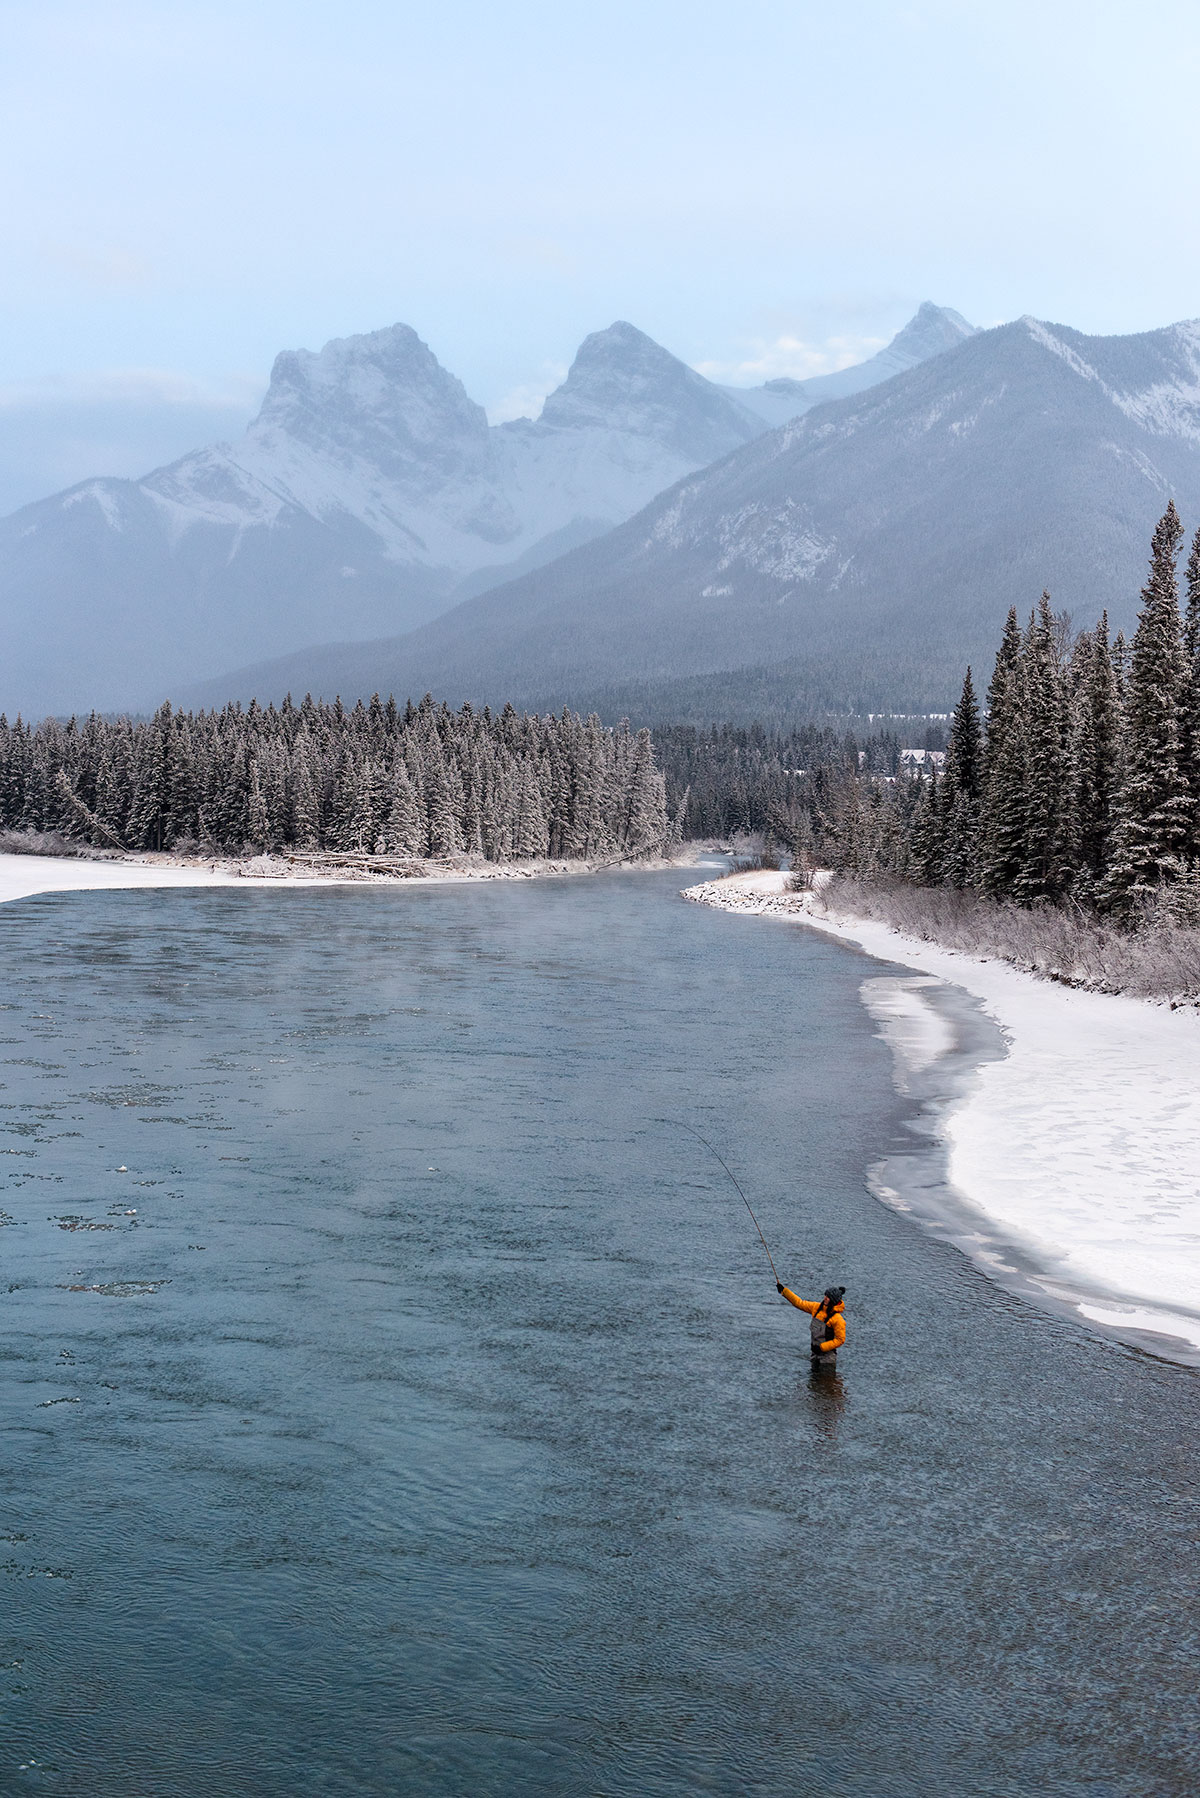 austin-trigg-patagonia-banff-alberta-winter-bow-river-mountains-canmore-canada-advenure-fishing-fly.jpg